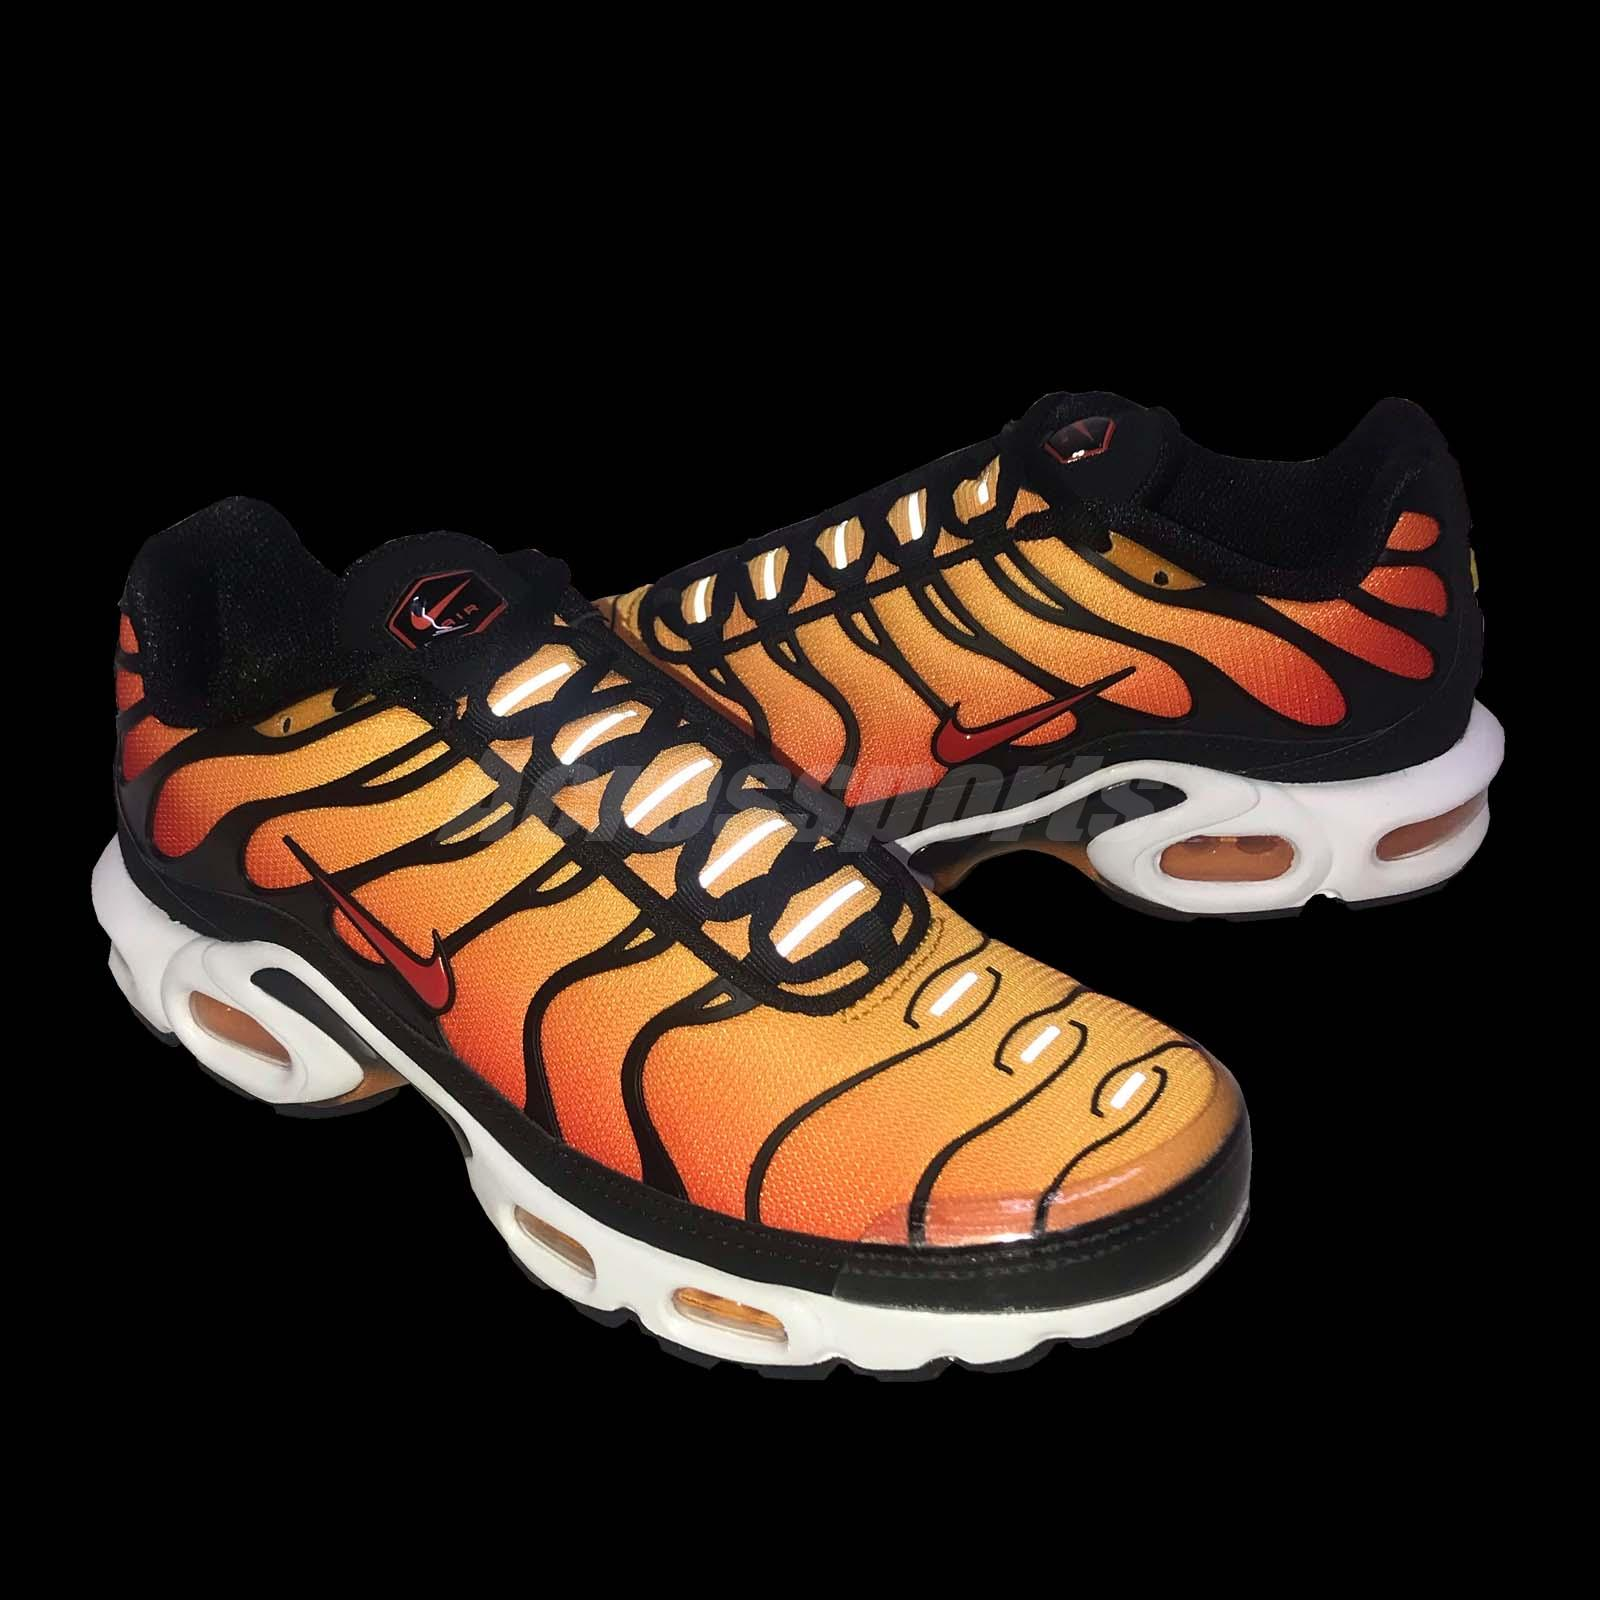 sports shoes 195d1 a8153 Clothing, Shoes & Accessories Nike Air Max Plus OG Tn Tiger ...